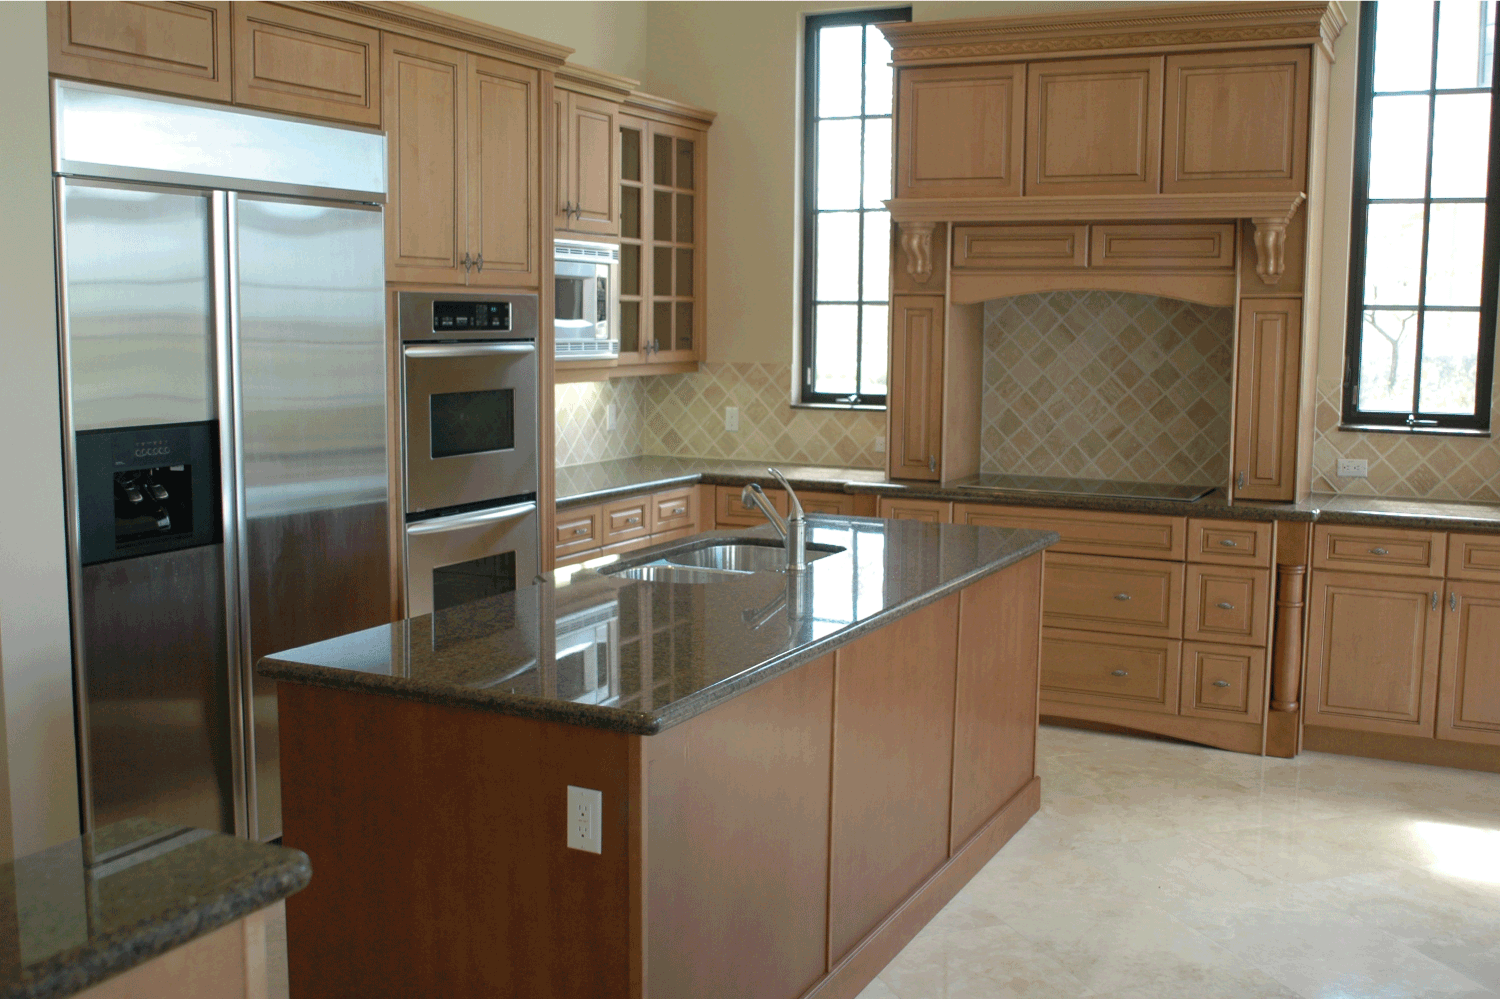 light and dark wood cabinets in a bright kitchen